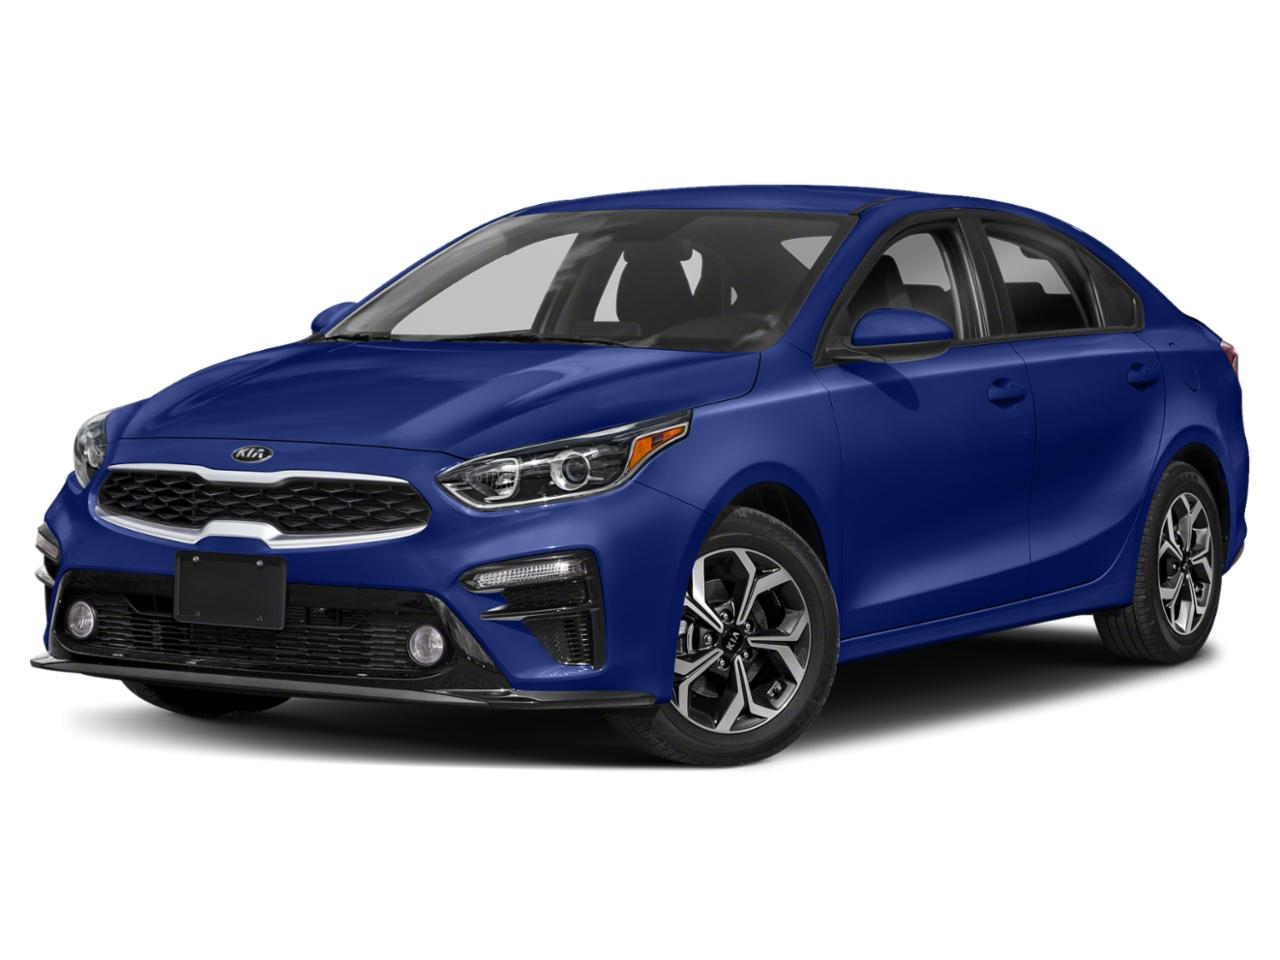 2020 Kia Forte For Sale Akron, Oh | Vandevere Auto - 2022 Kia Forte Blue Release Date, Safety Feature